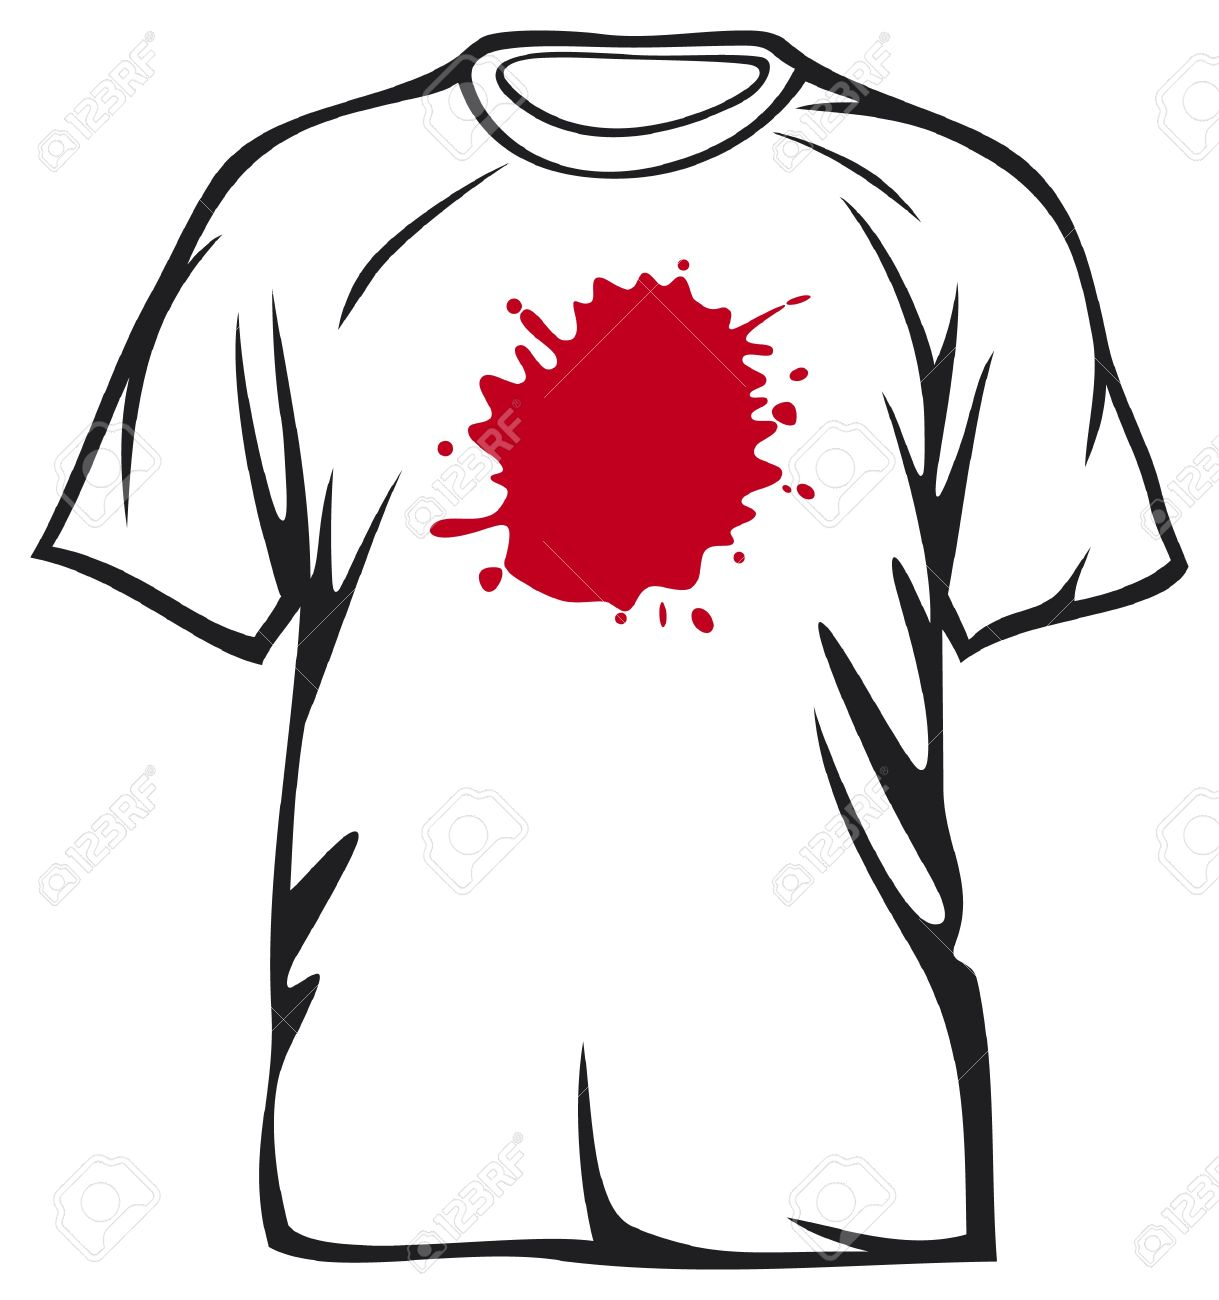 red stains on white t-shirt  dirty t-shirt Stock Vector - 17470039